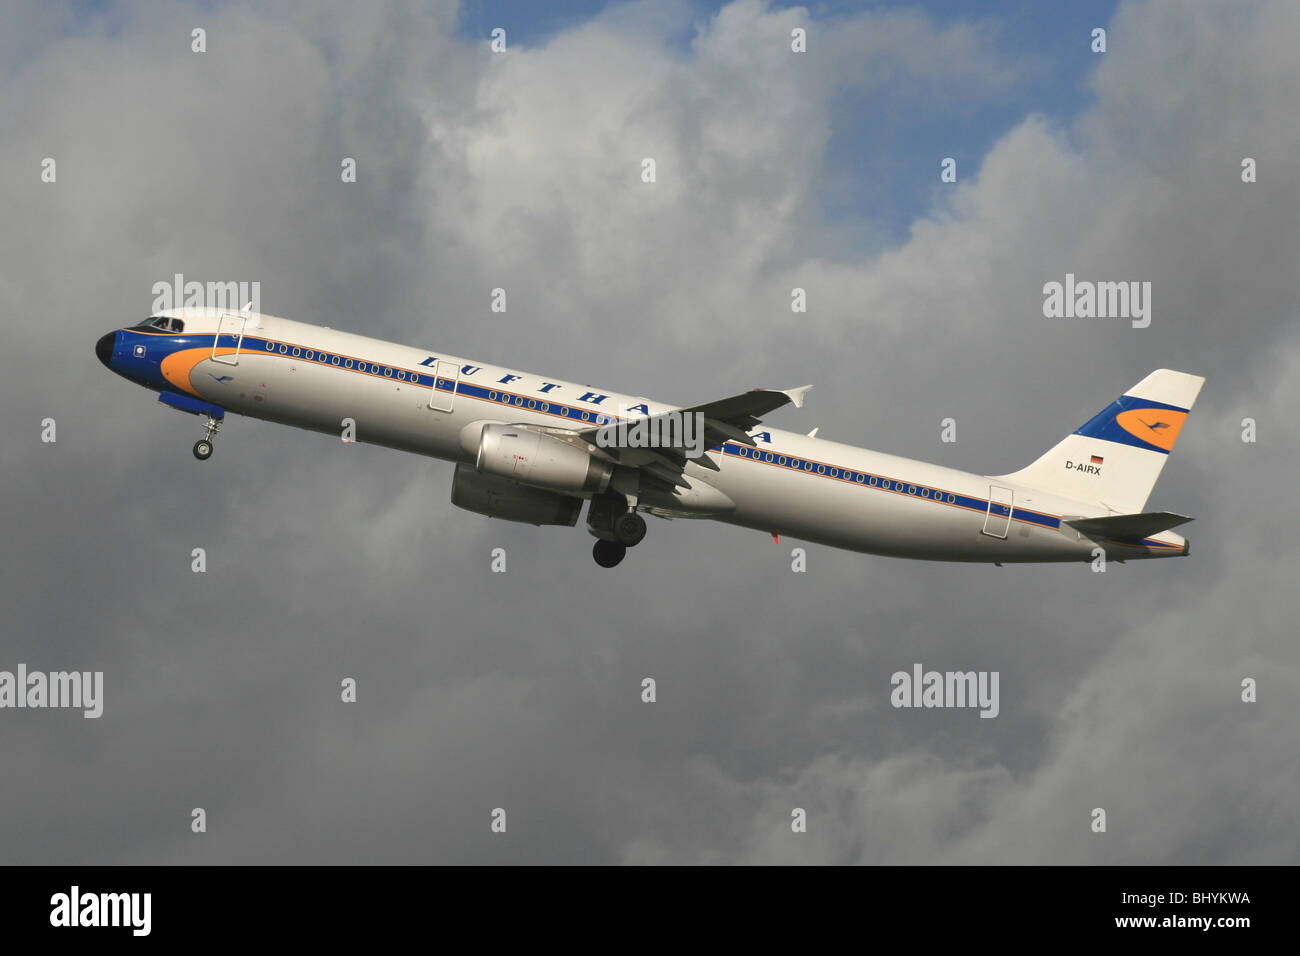 LUFTHANSA AIRBUS A321 IN RETRO FIFTIES COLORS - Stock Image